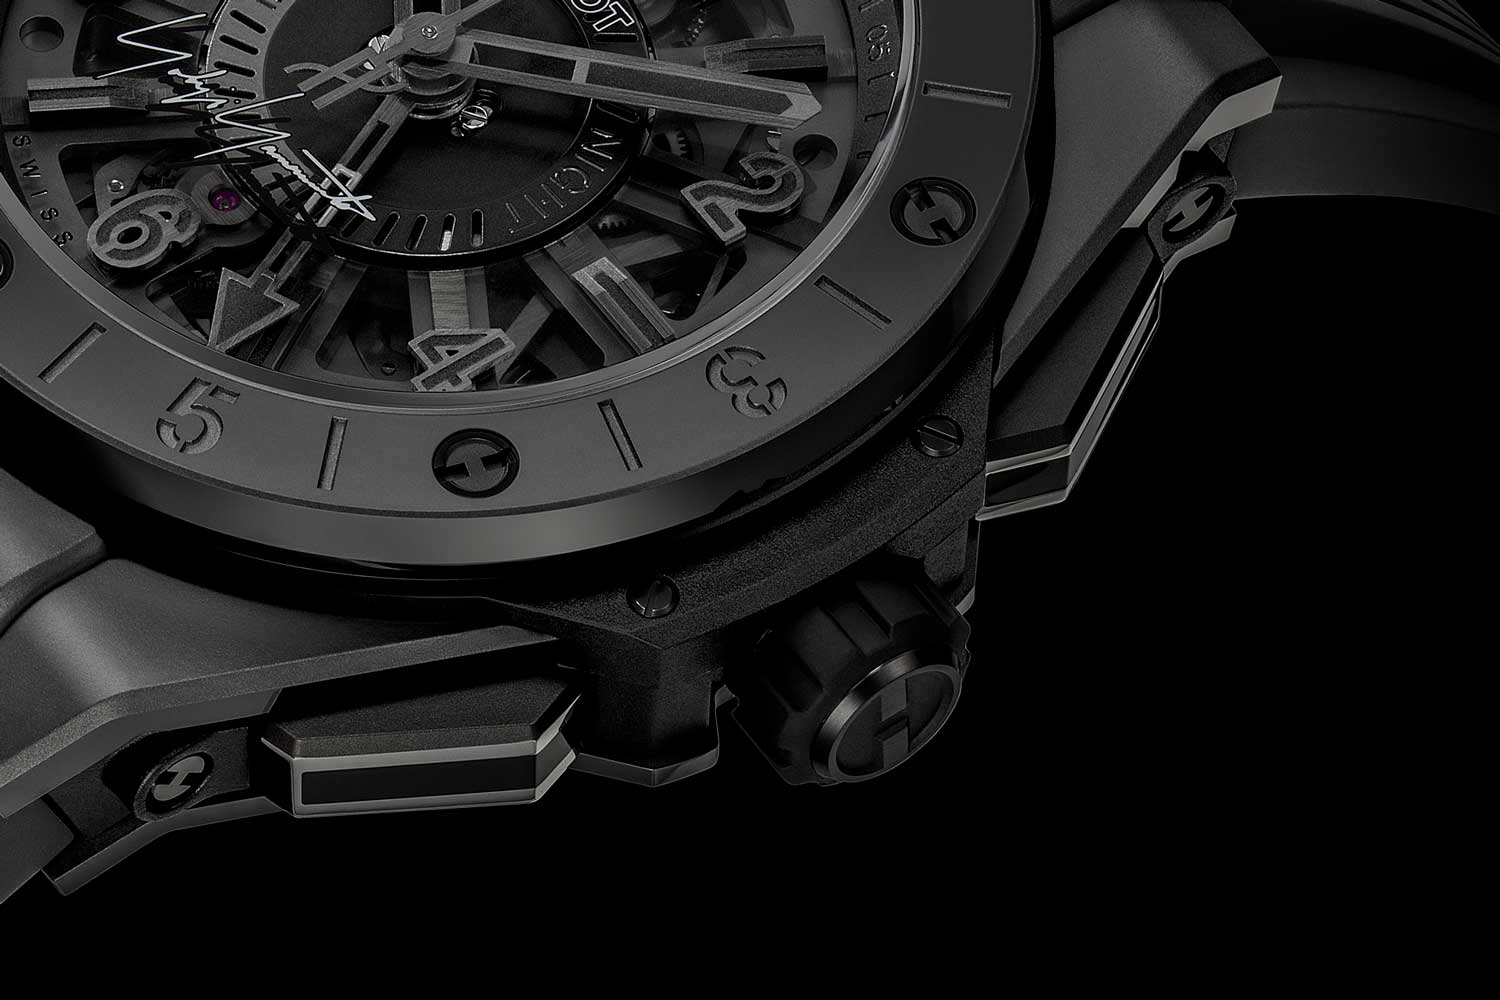 Pushers on the Hublot Big Bang GMT All Black Yohji Yamamoto